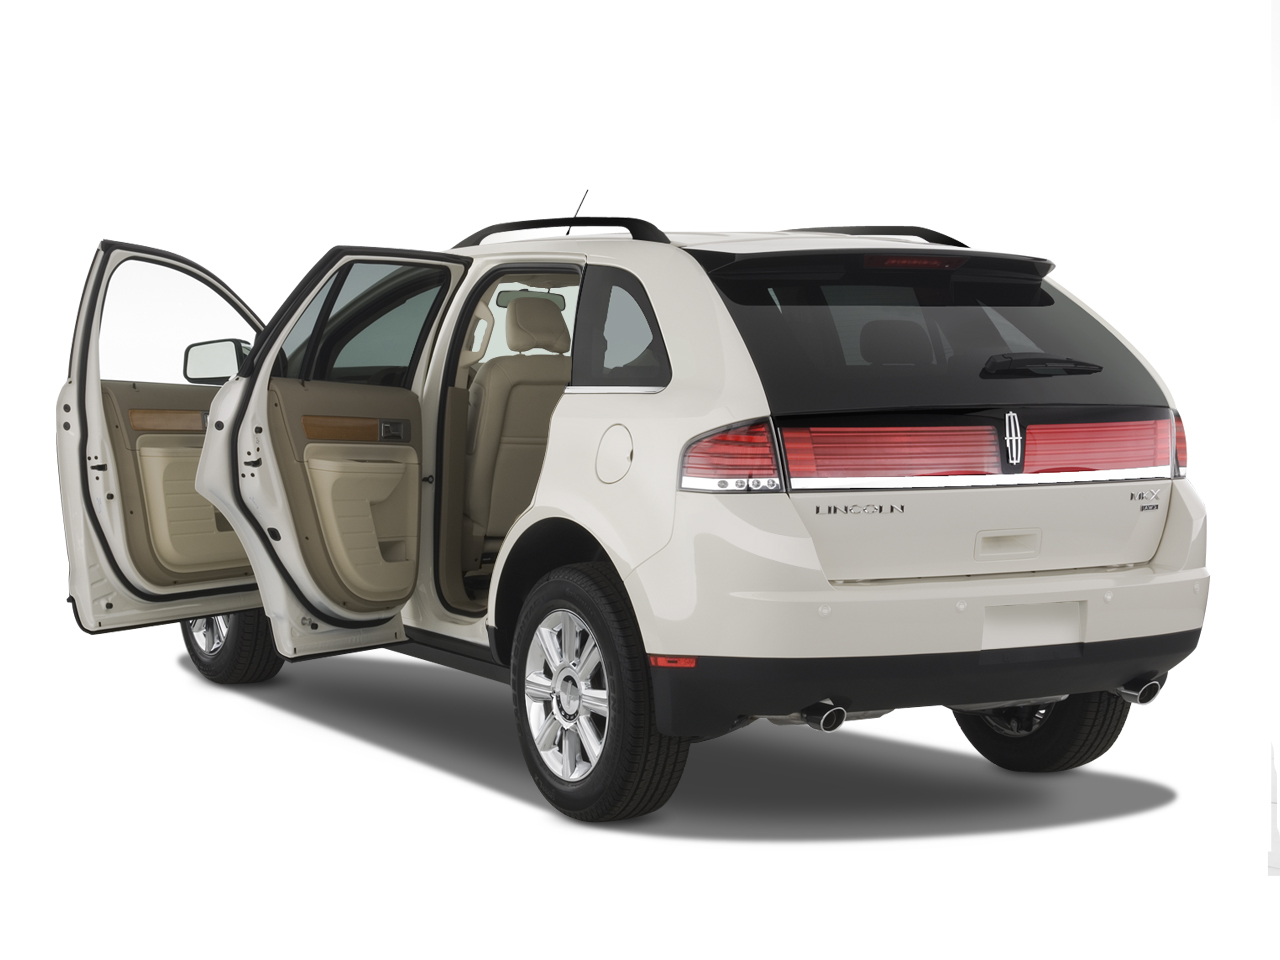 http://st.automobilemag.com/uploads/sites/10/2015/11/2007-lincoln-mkx-awd-suv-doors.png